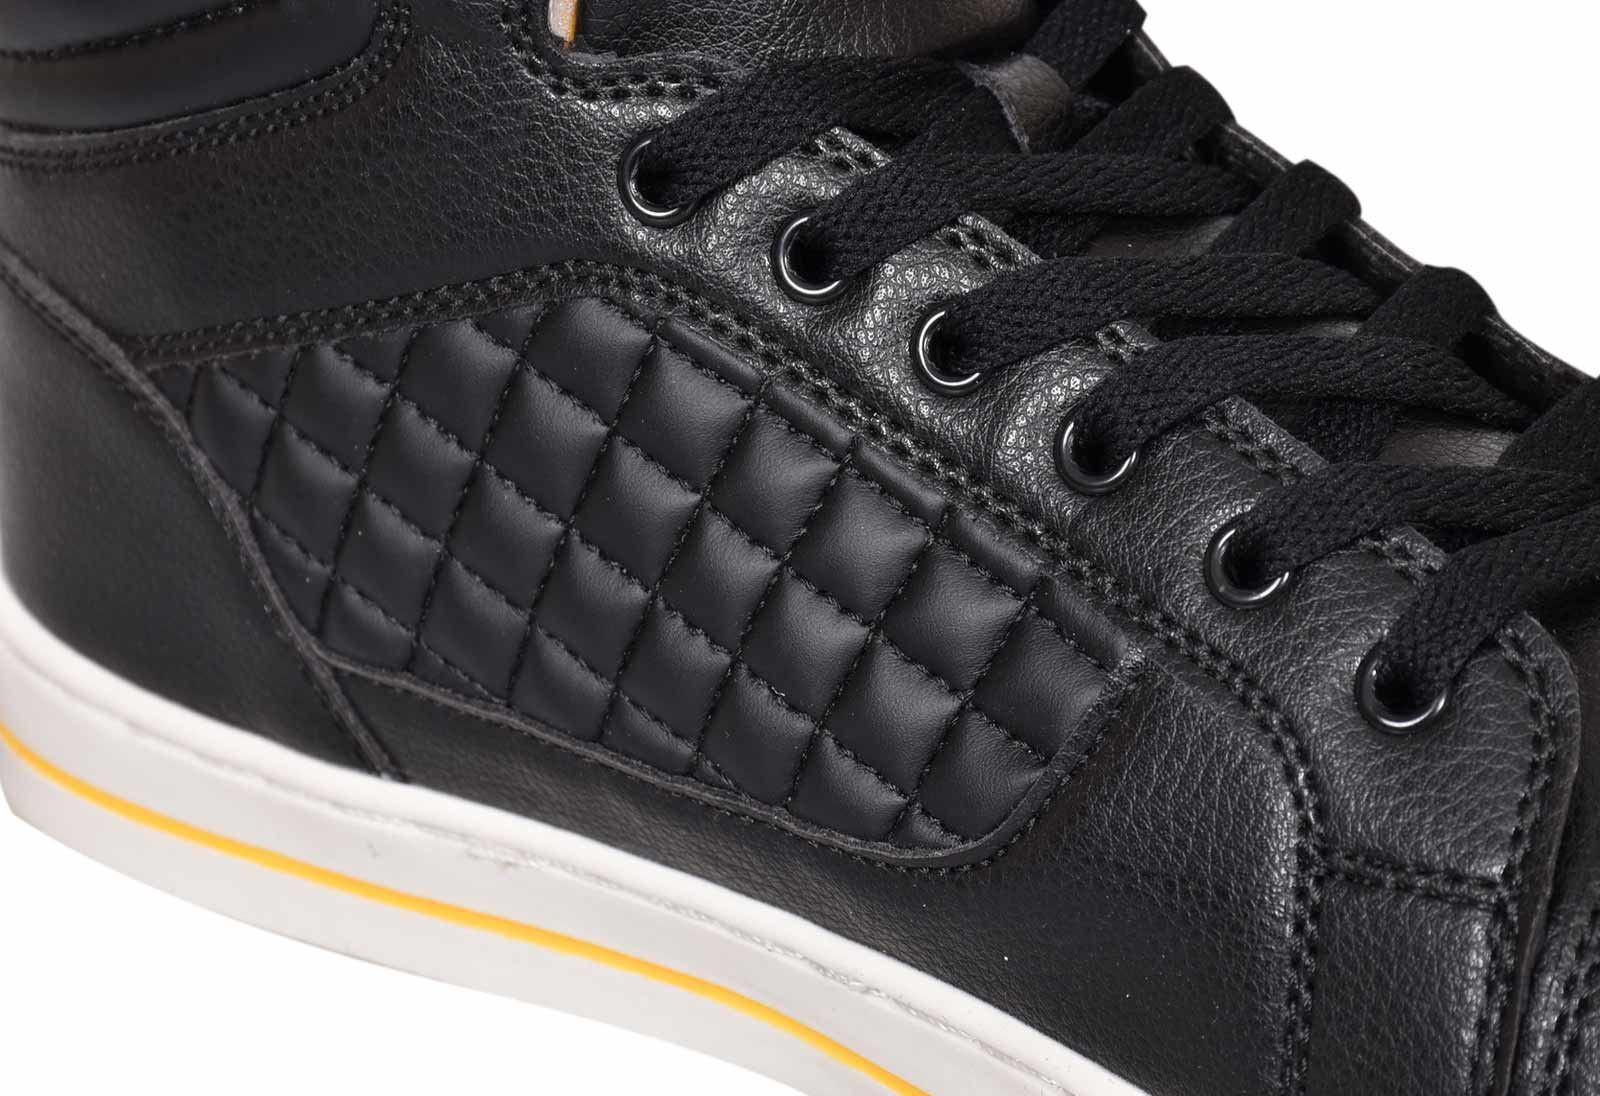 Mens-Trainers-Lace-up-Crosshatch-High-Tops-Ankle-Padded-Shoes-New-UK-Sizes-7-12 thumbnail 8